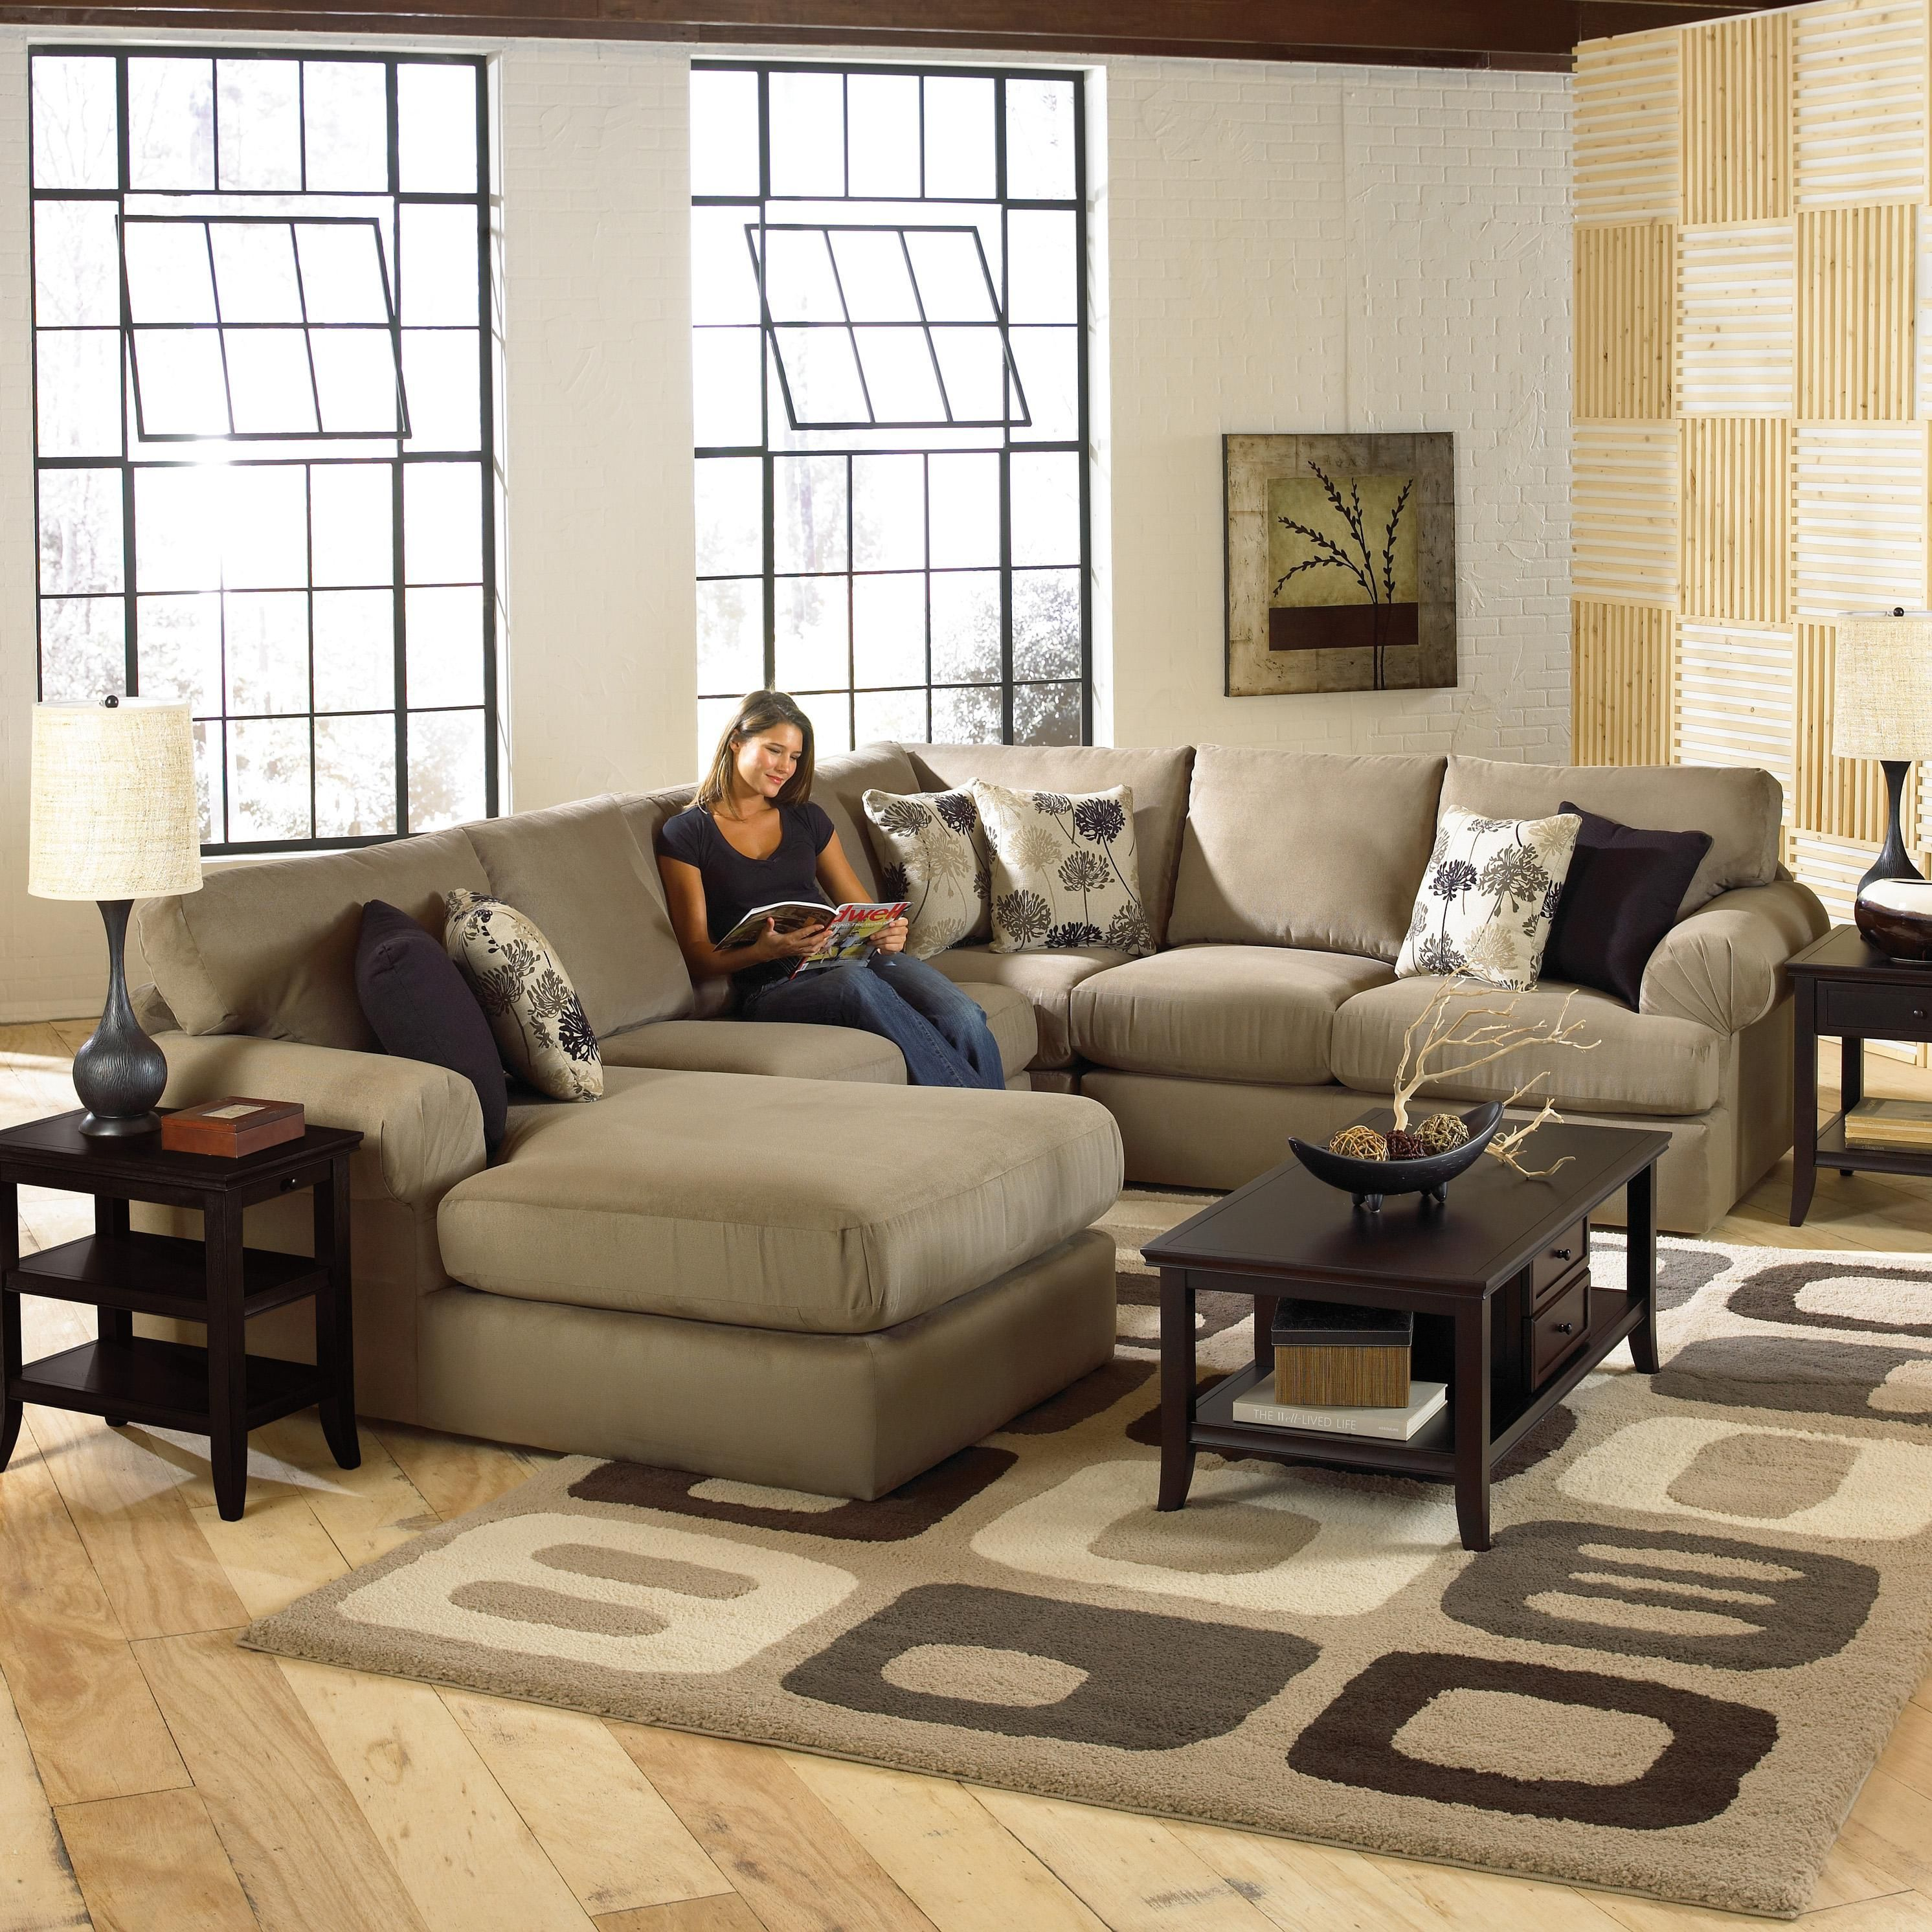 14 Best Coffee Table For Sectional With Chaise Gallery With Images Sectional Sofas Living Room Living Room Sectional Sectional Living Room Small